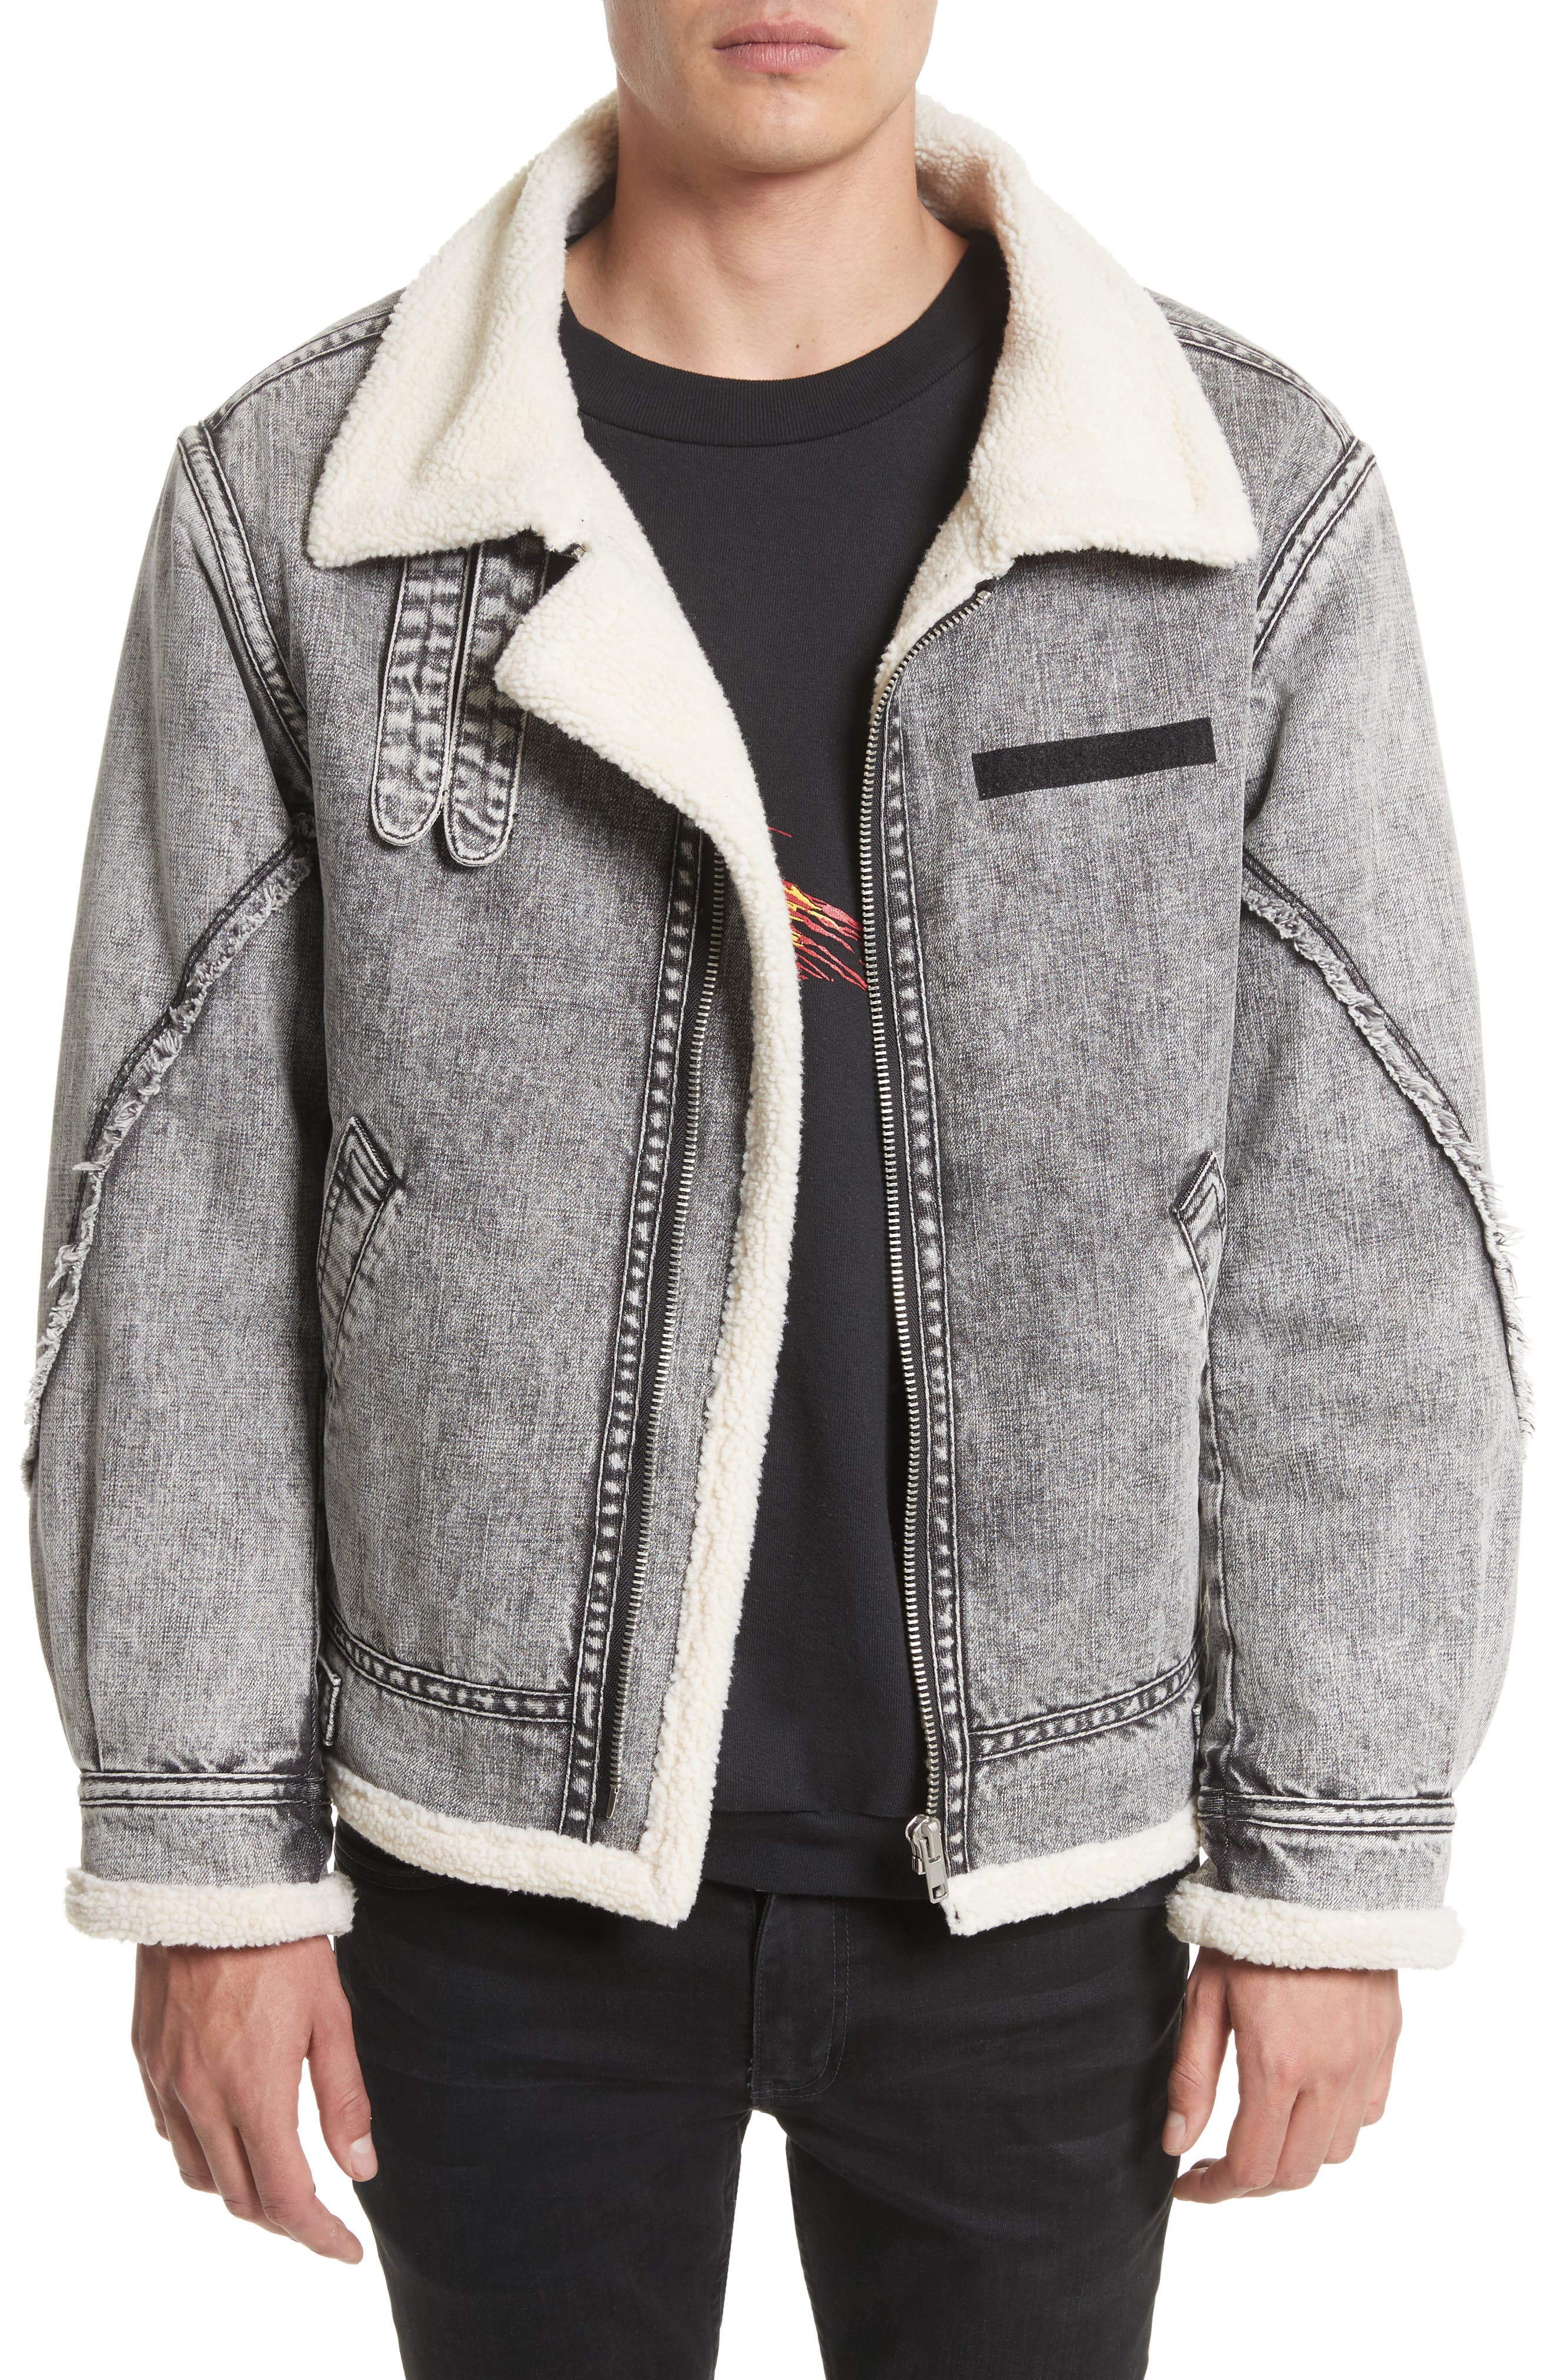 Main Image - Drifter Denim Bomber Jacket